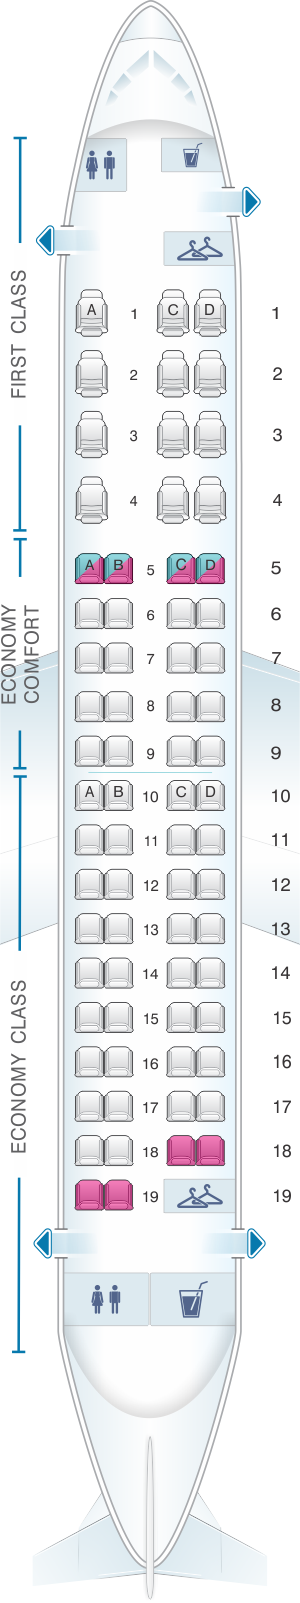 Seat map for Delta Air Lines Embraer E175 SC SkyWest